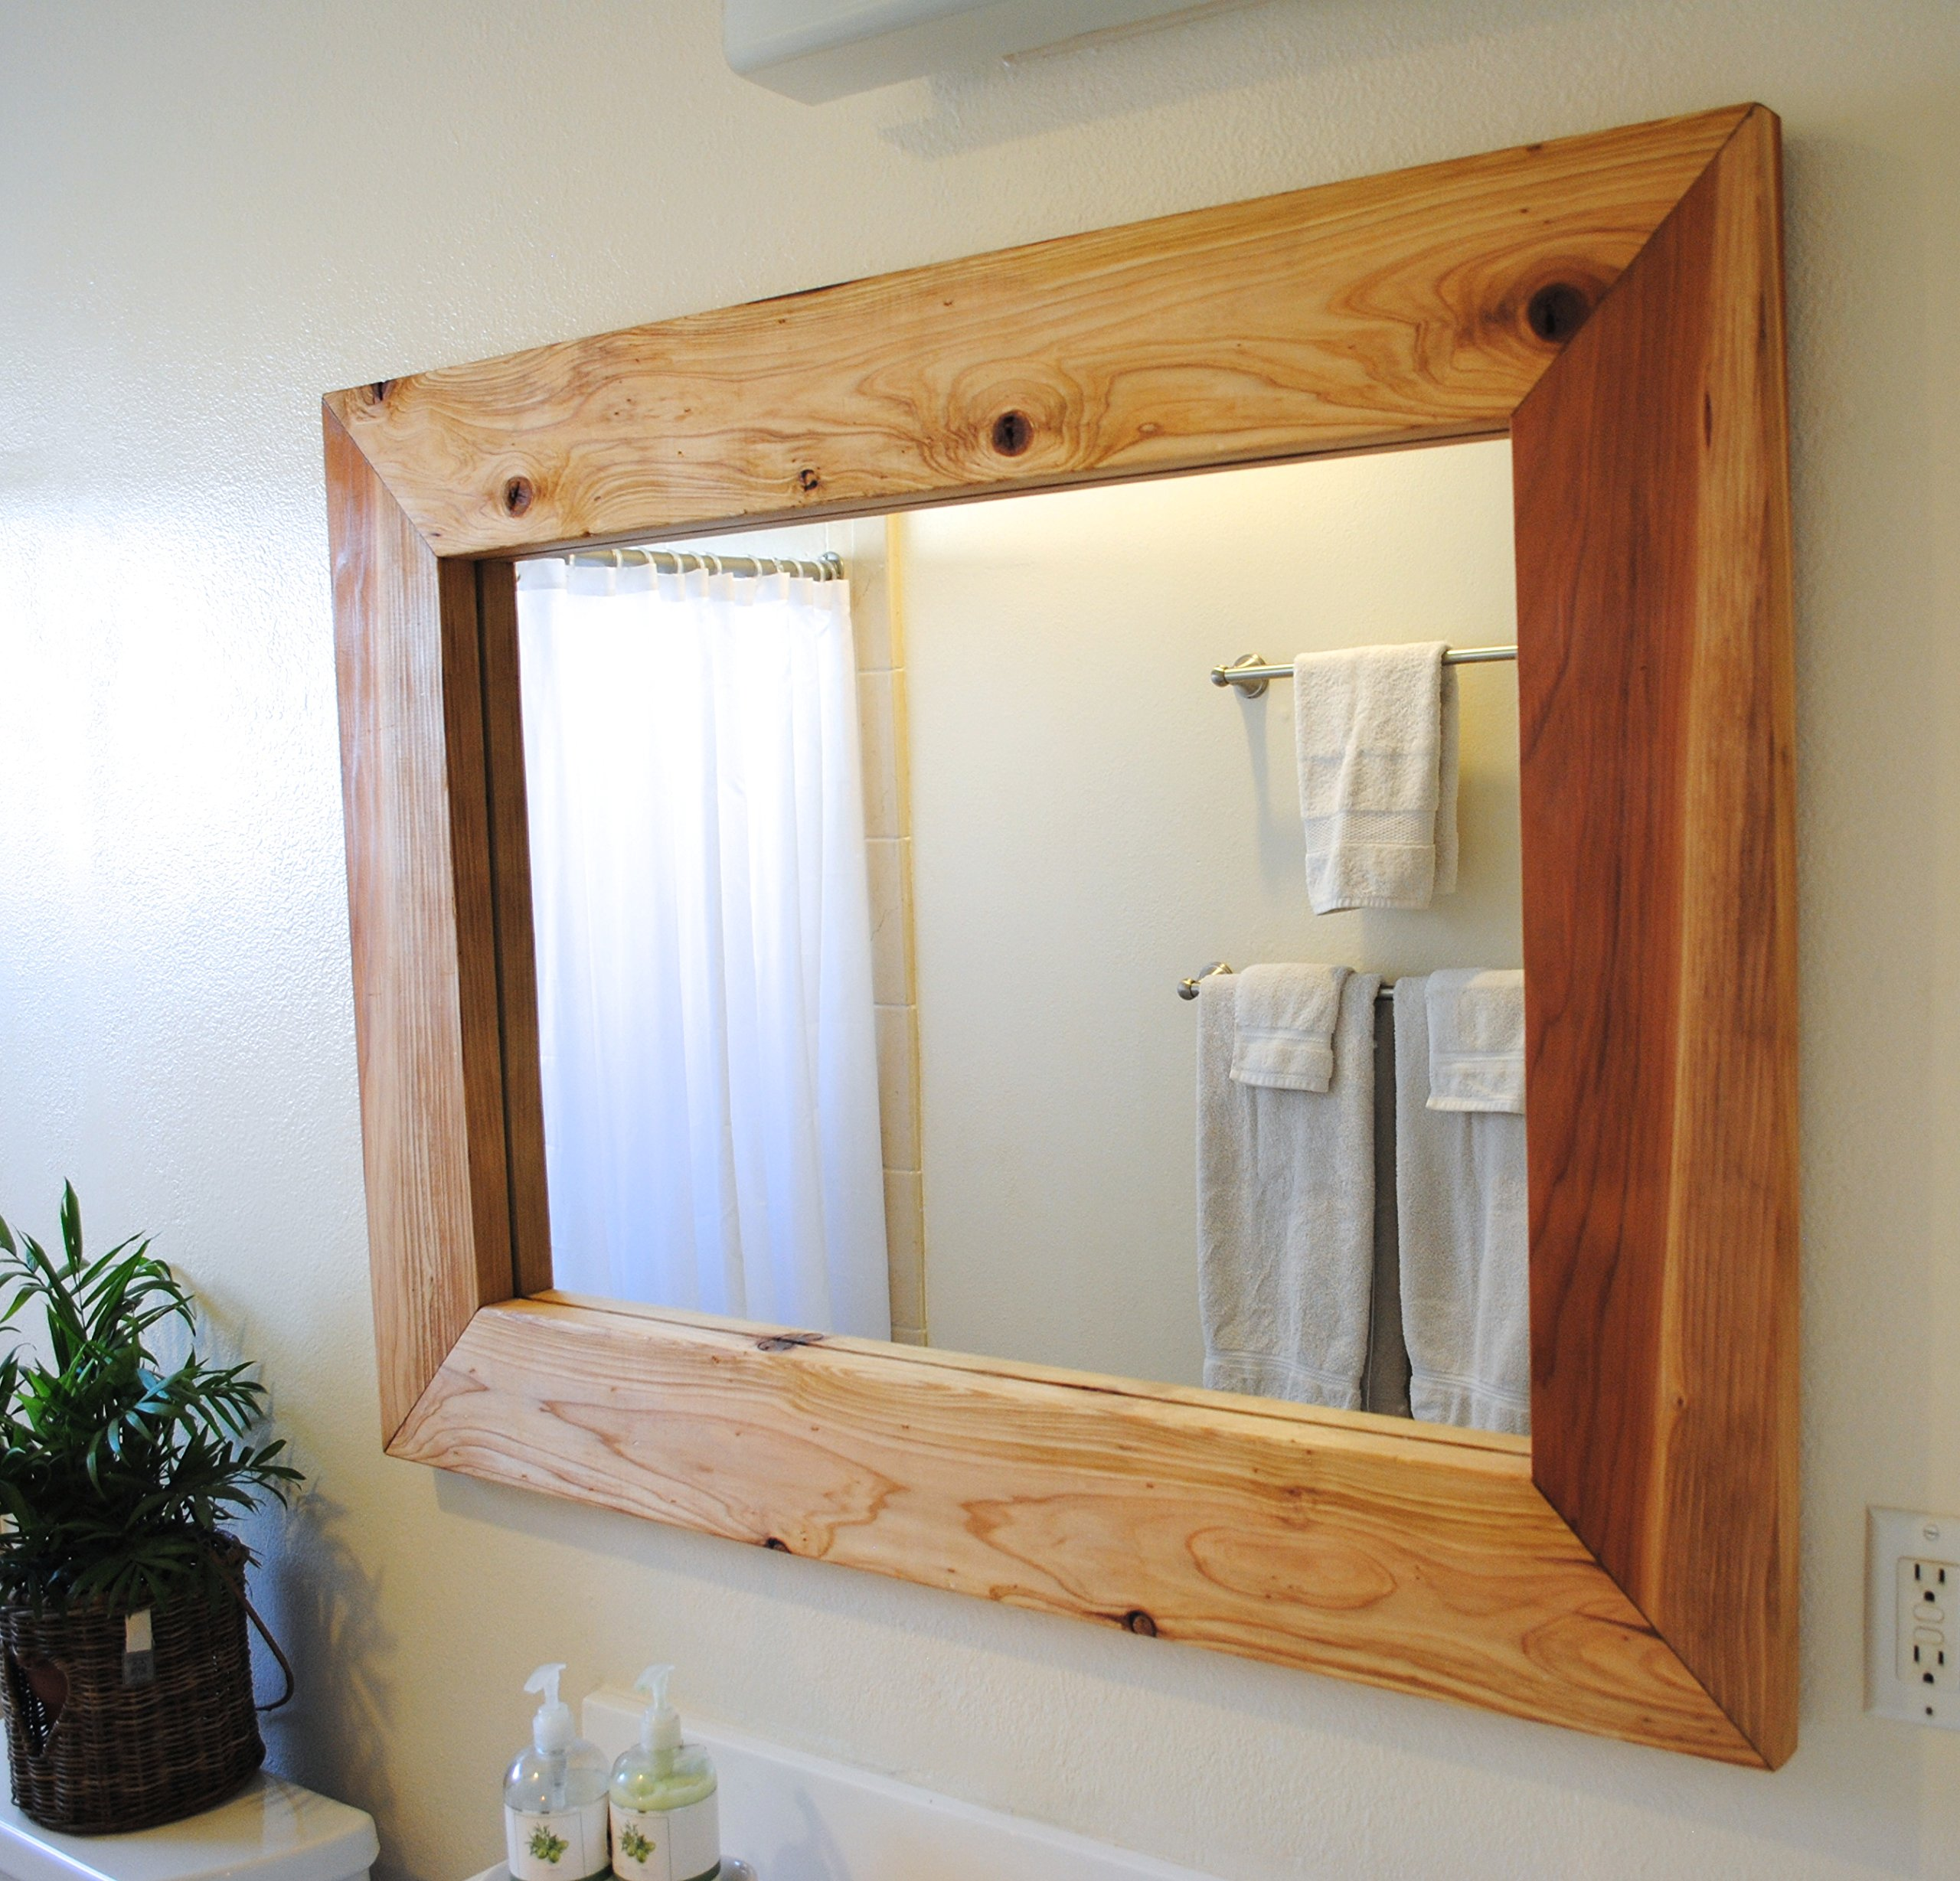 Large mirror, wooden frame mirror, W 46'' / D 1.5'' / H 34'', Rustic Mirror, Red wood, Solid wood mirror by That Dutch Girl (Image #1)